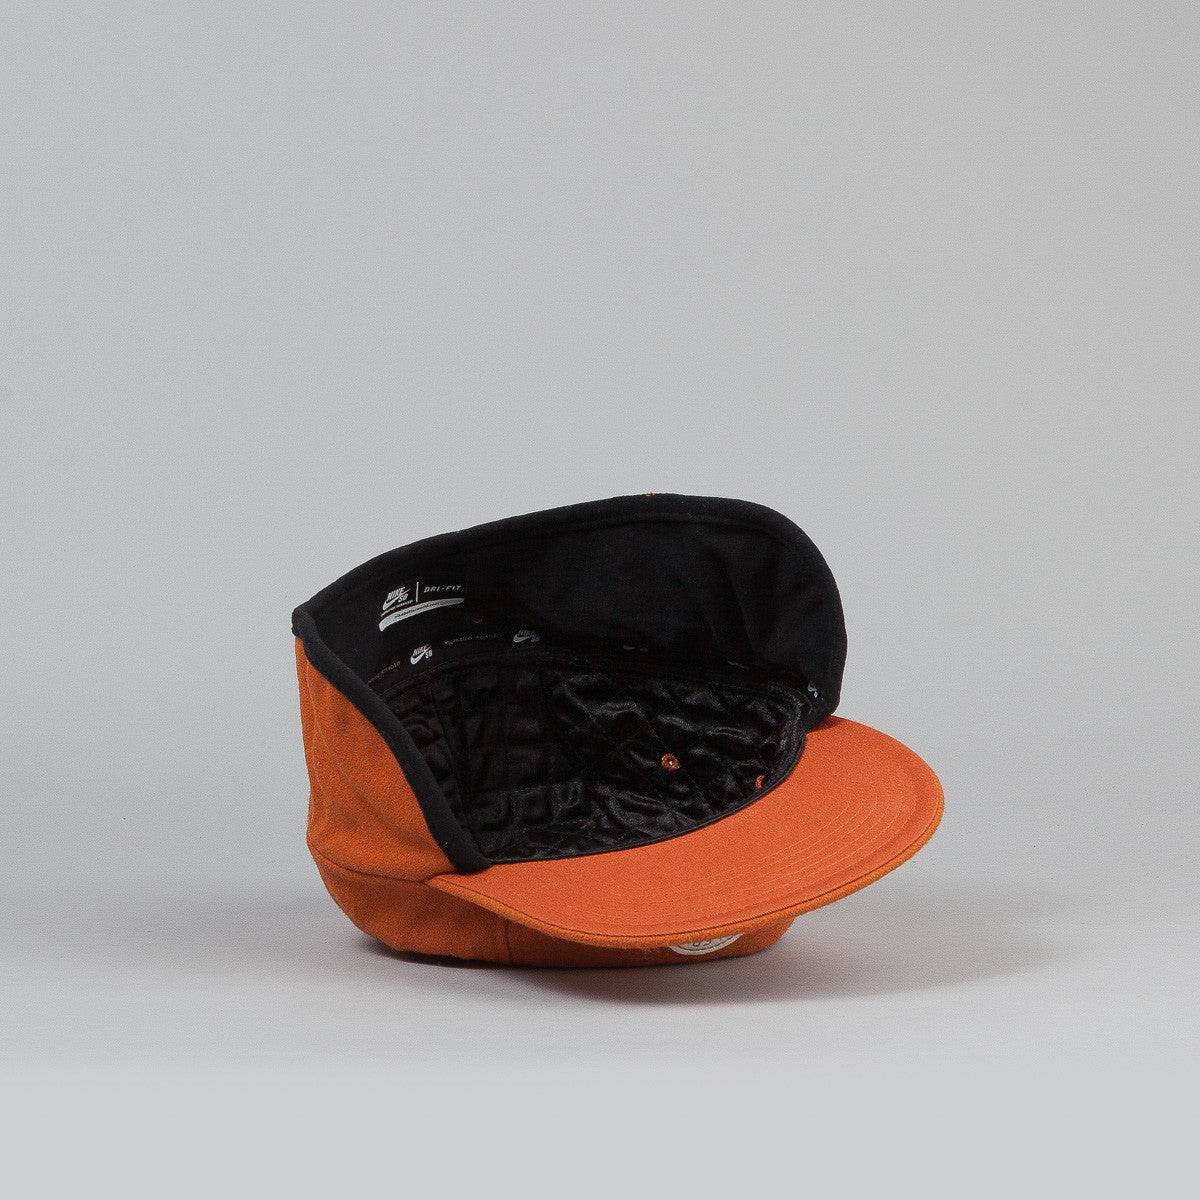 Nike SB x Poler Winter Cap - Desert Orange